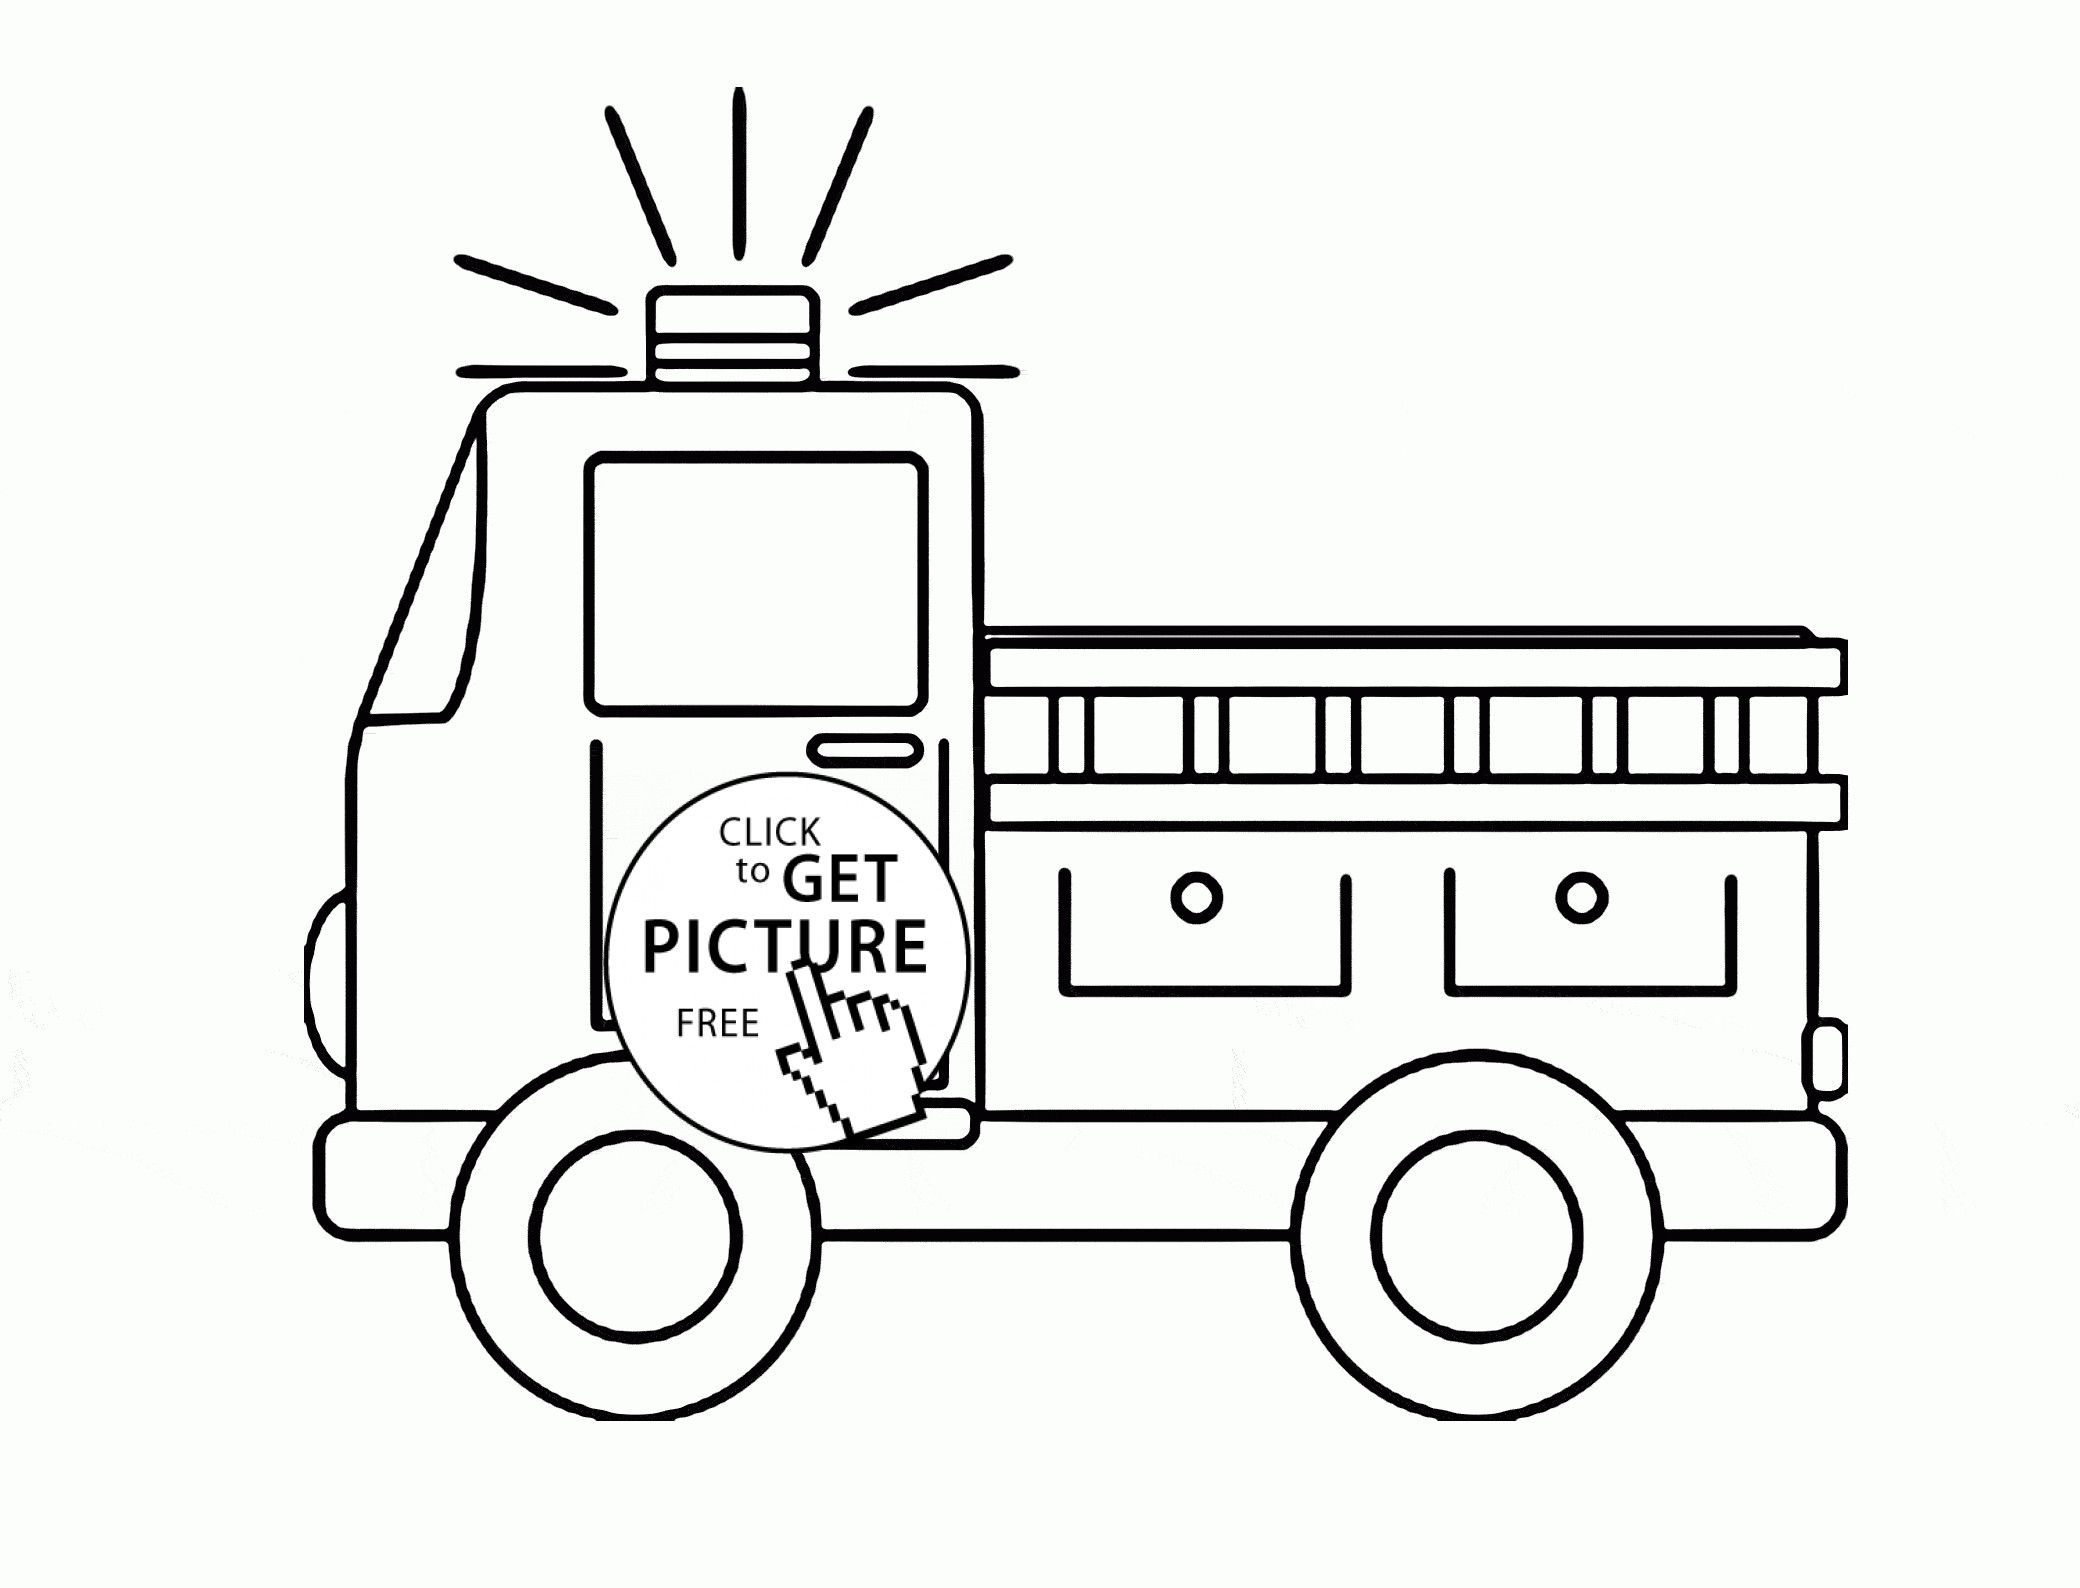 Fire Truck Coloring Page Luxury 38 Fire Trucks Coloring Pages Paw Patrol Marshall With Fire